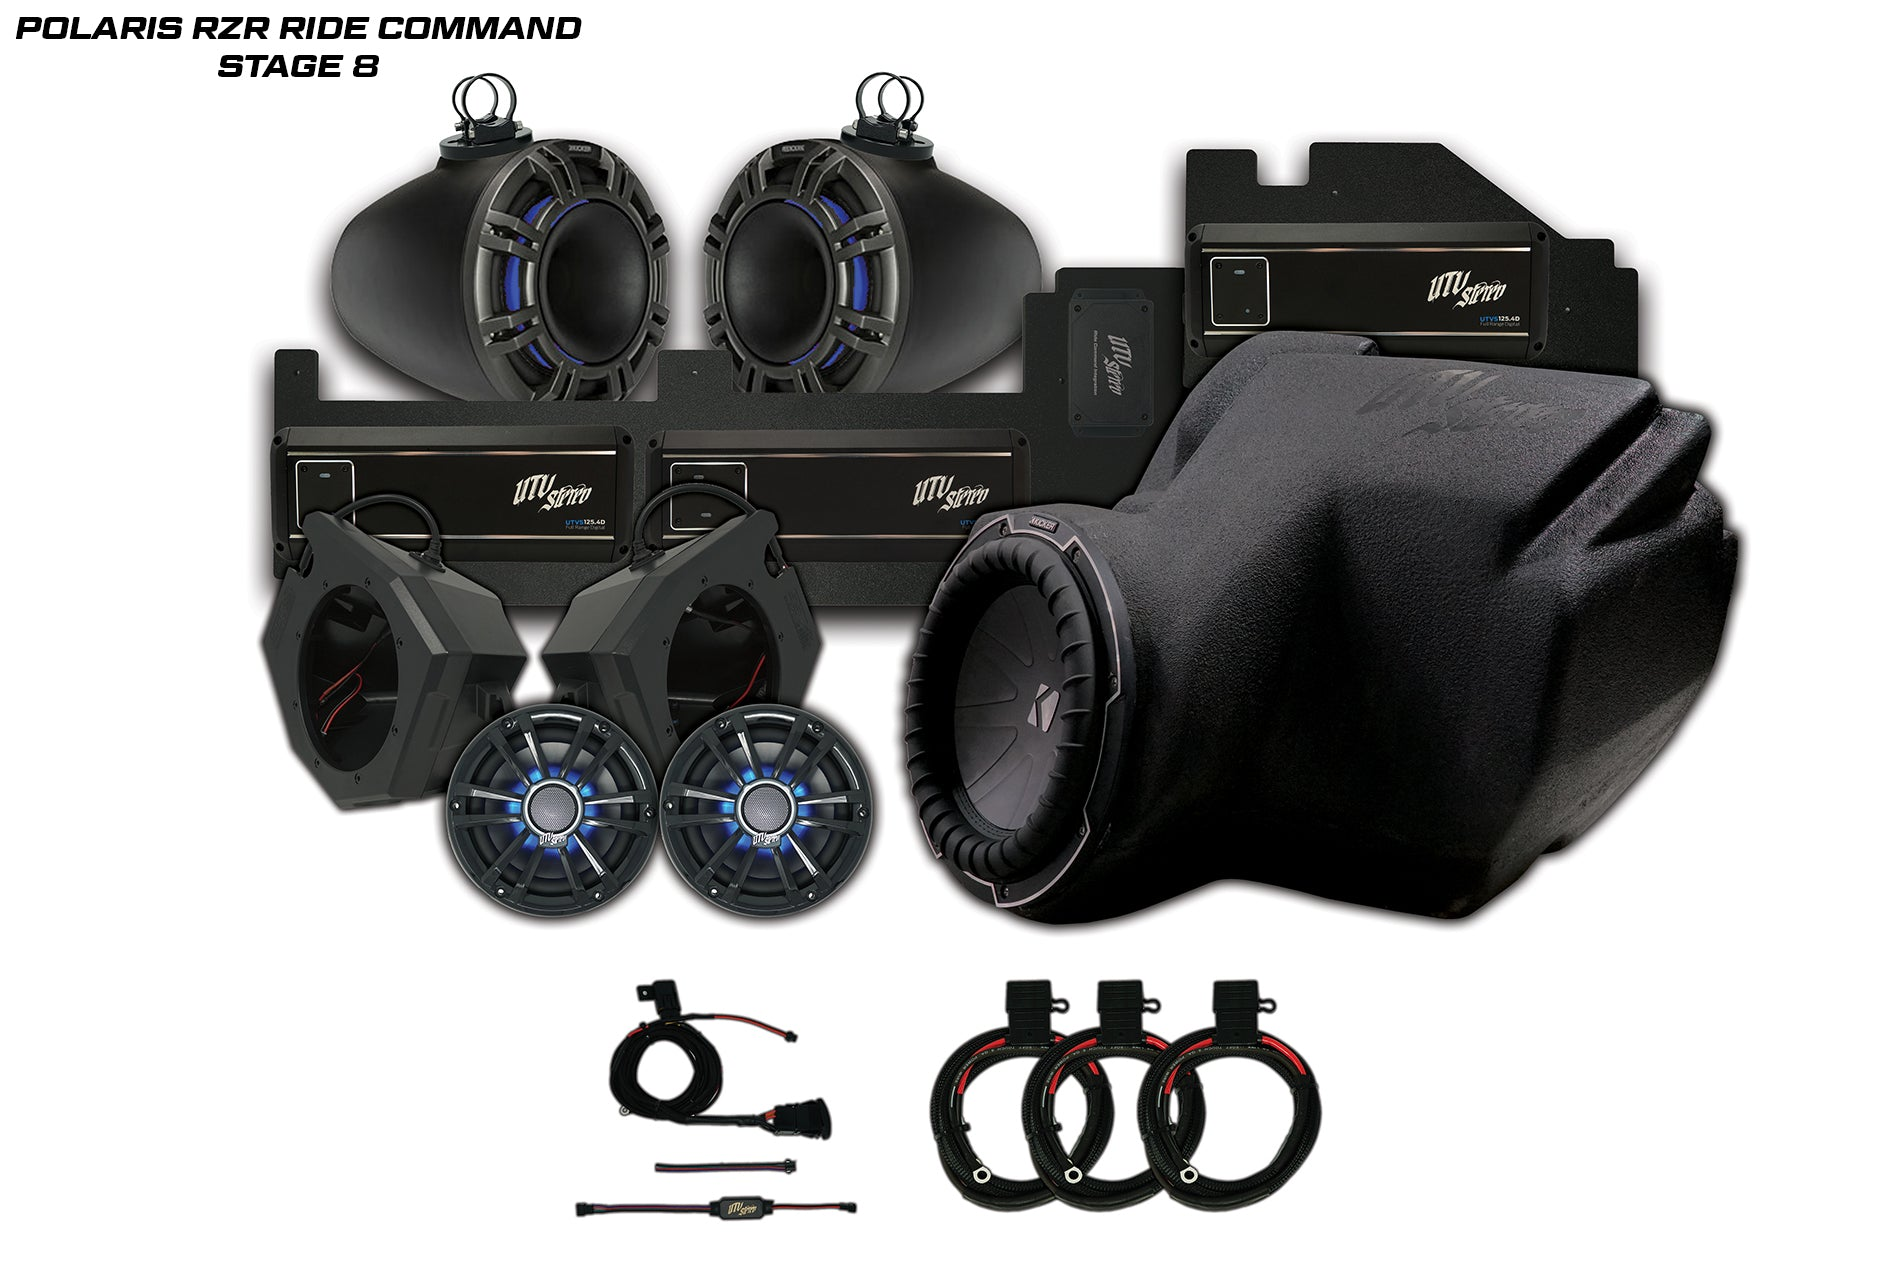 Polaris RZR Ride Command UTV Stereo Stage 8 Stereo System